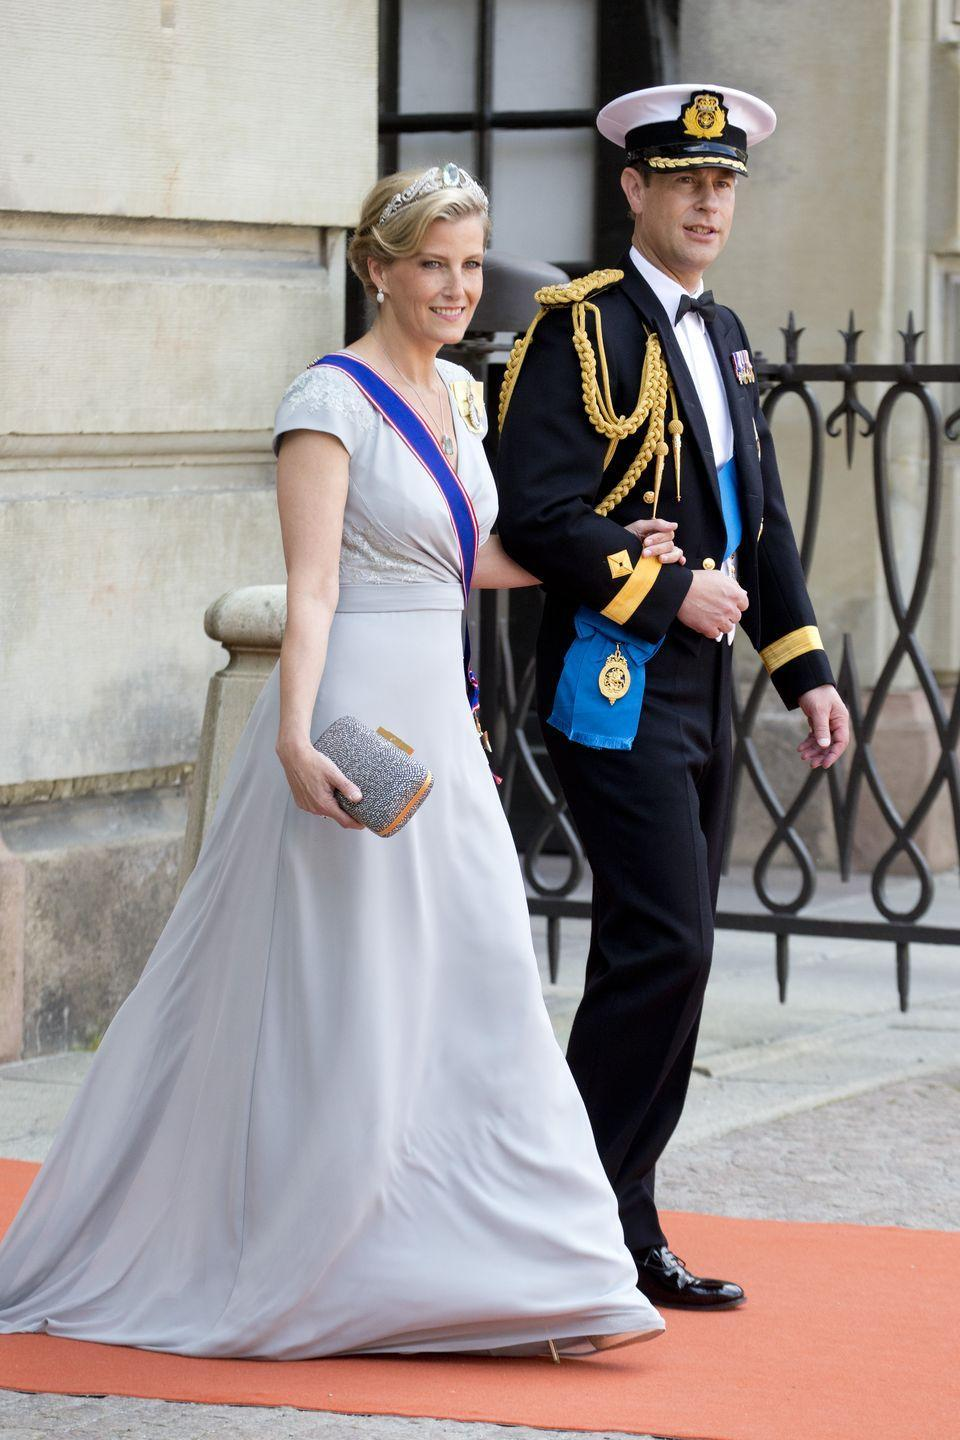 <p>The Queen's daughter-in-law wore a flowing empire-waisted evening gown to the wedding of Prince Carl of Sweden. The muted color and flowing silhouette reminds us of Aurora's second dress.</p>